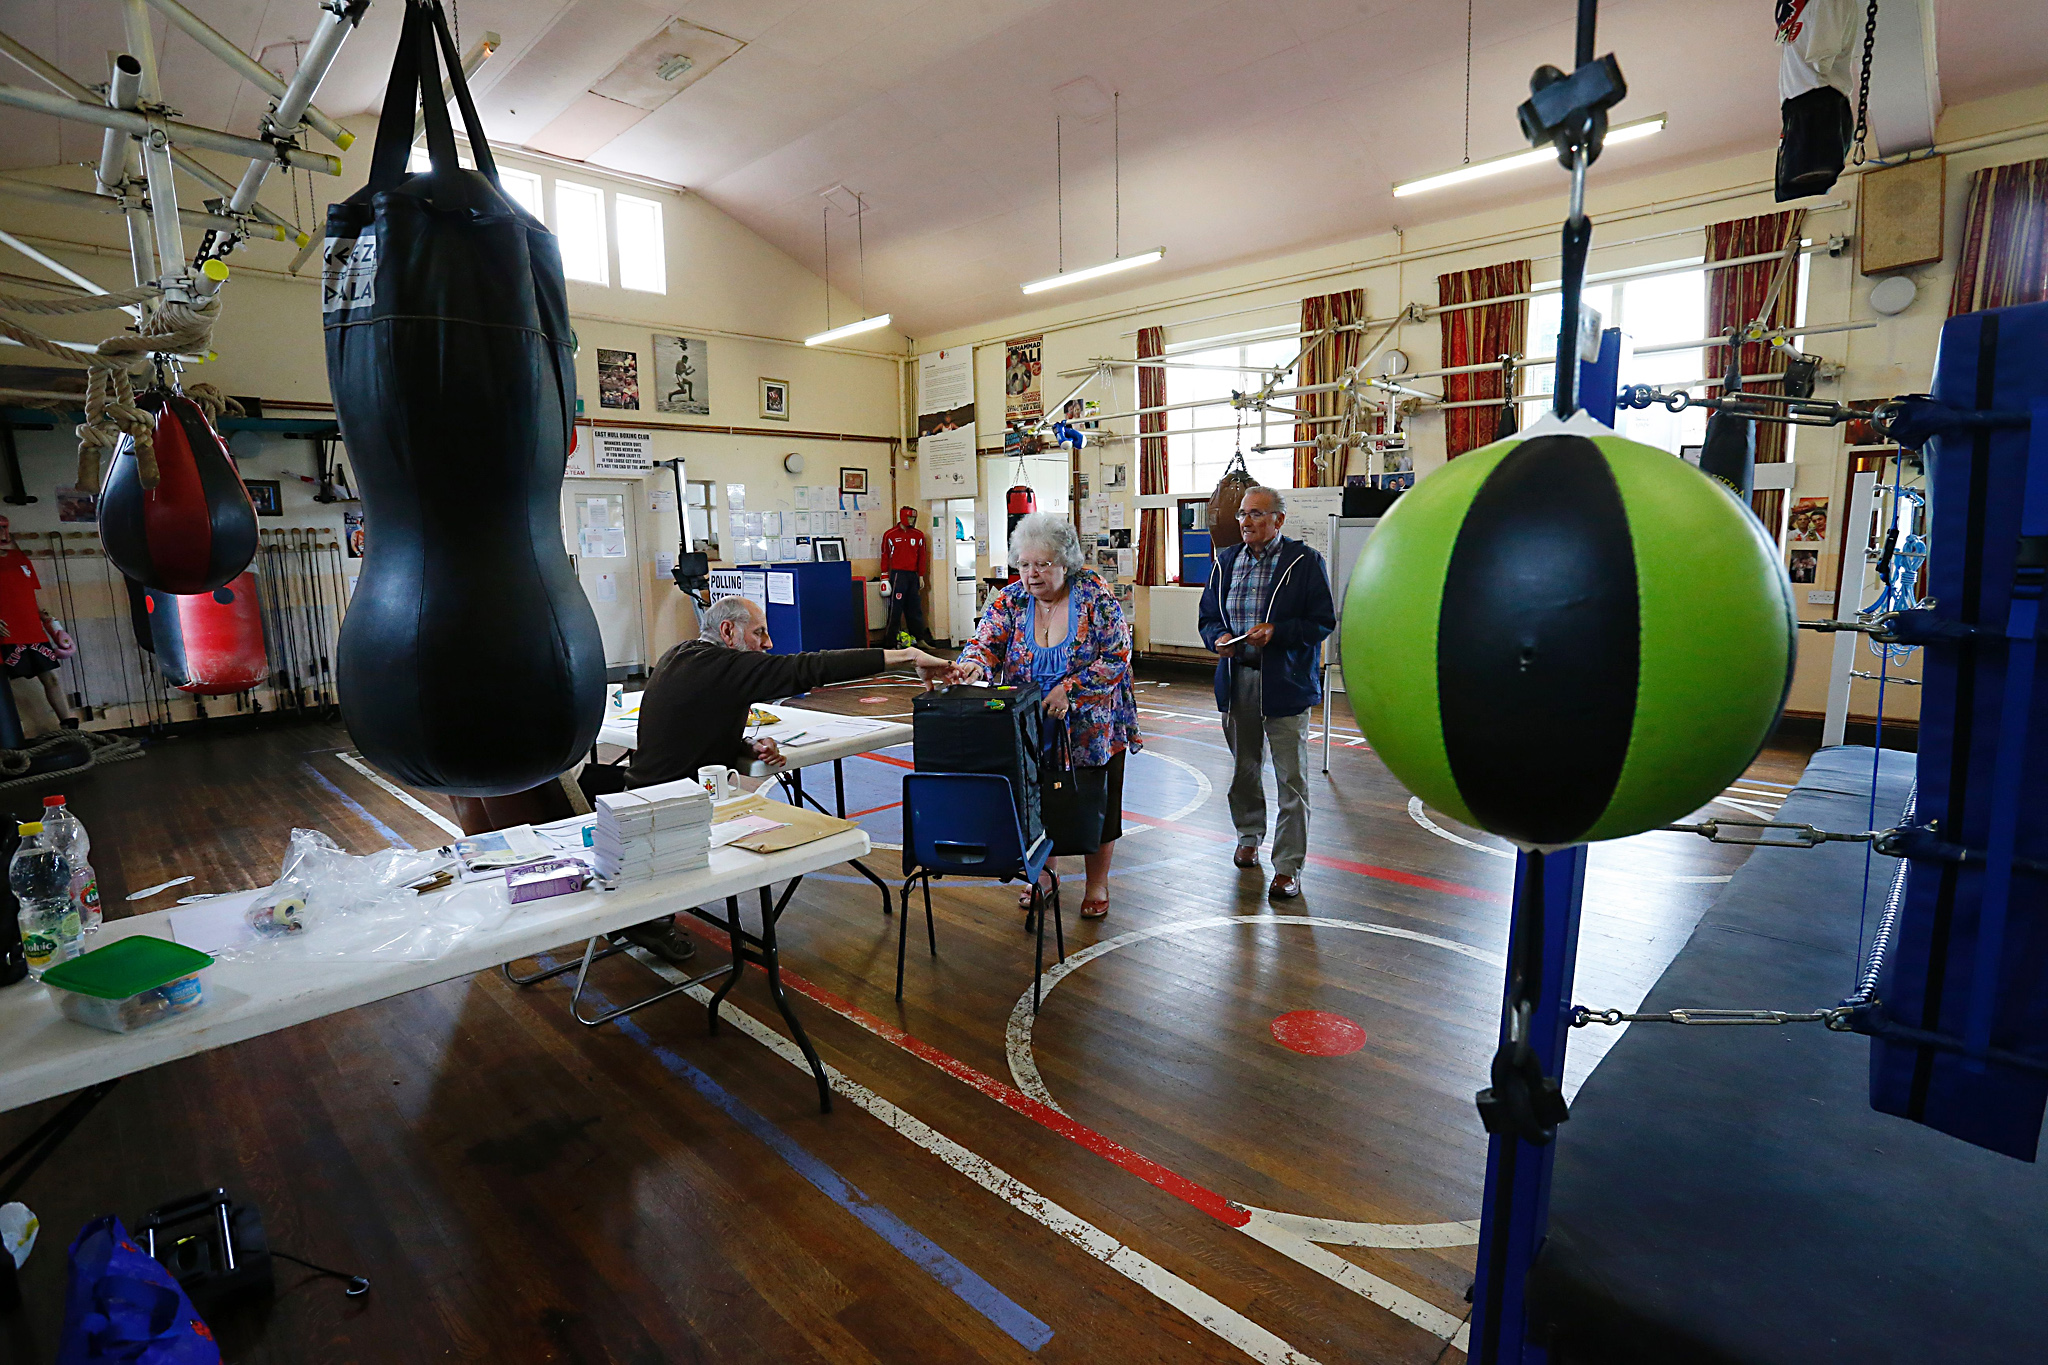 Local residents cast their votes on the EU referendum at a polling staton at the East Hull Boxing Club in Kingston-Upon-Hull, northern England on June 23, 2016. Millions of Britons began voting today in a bitterly-fought, knife-edge referendum that could tear up the island nation's EU membership and spark the greatest emergency of the bloc's 60-year history. / AFP / Lindsey Parnaby        (Photo credit should read LINDSEY PARNABY/AFP/Getty Images)